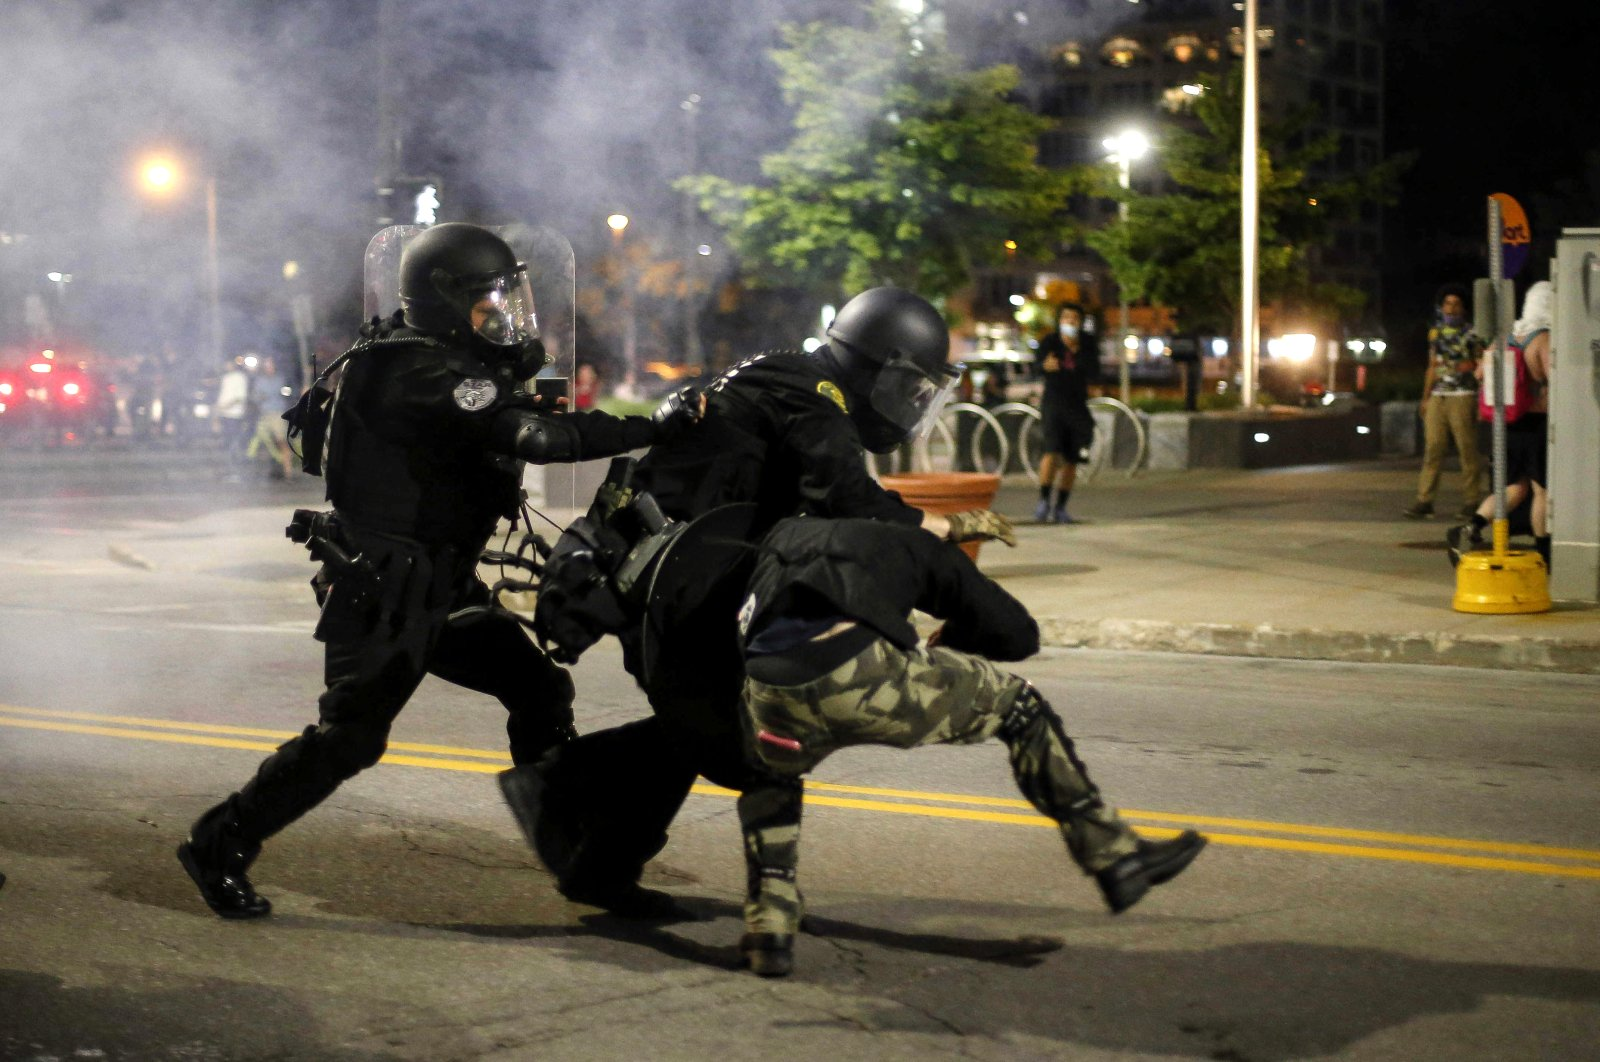 Police clash with protesters in downtown Des Moines, Iowa, U.S., May 30, 2020. (The Des Moines Register via AP)